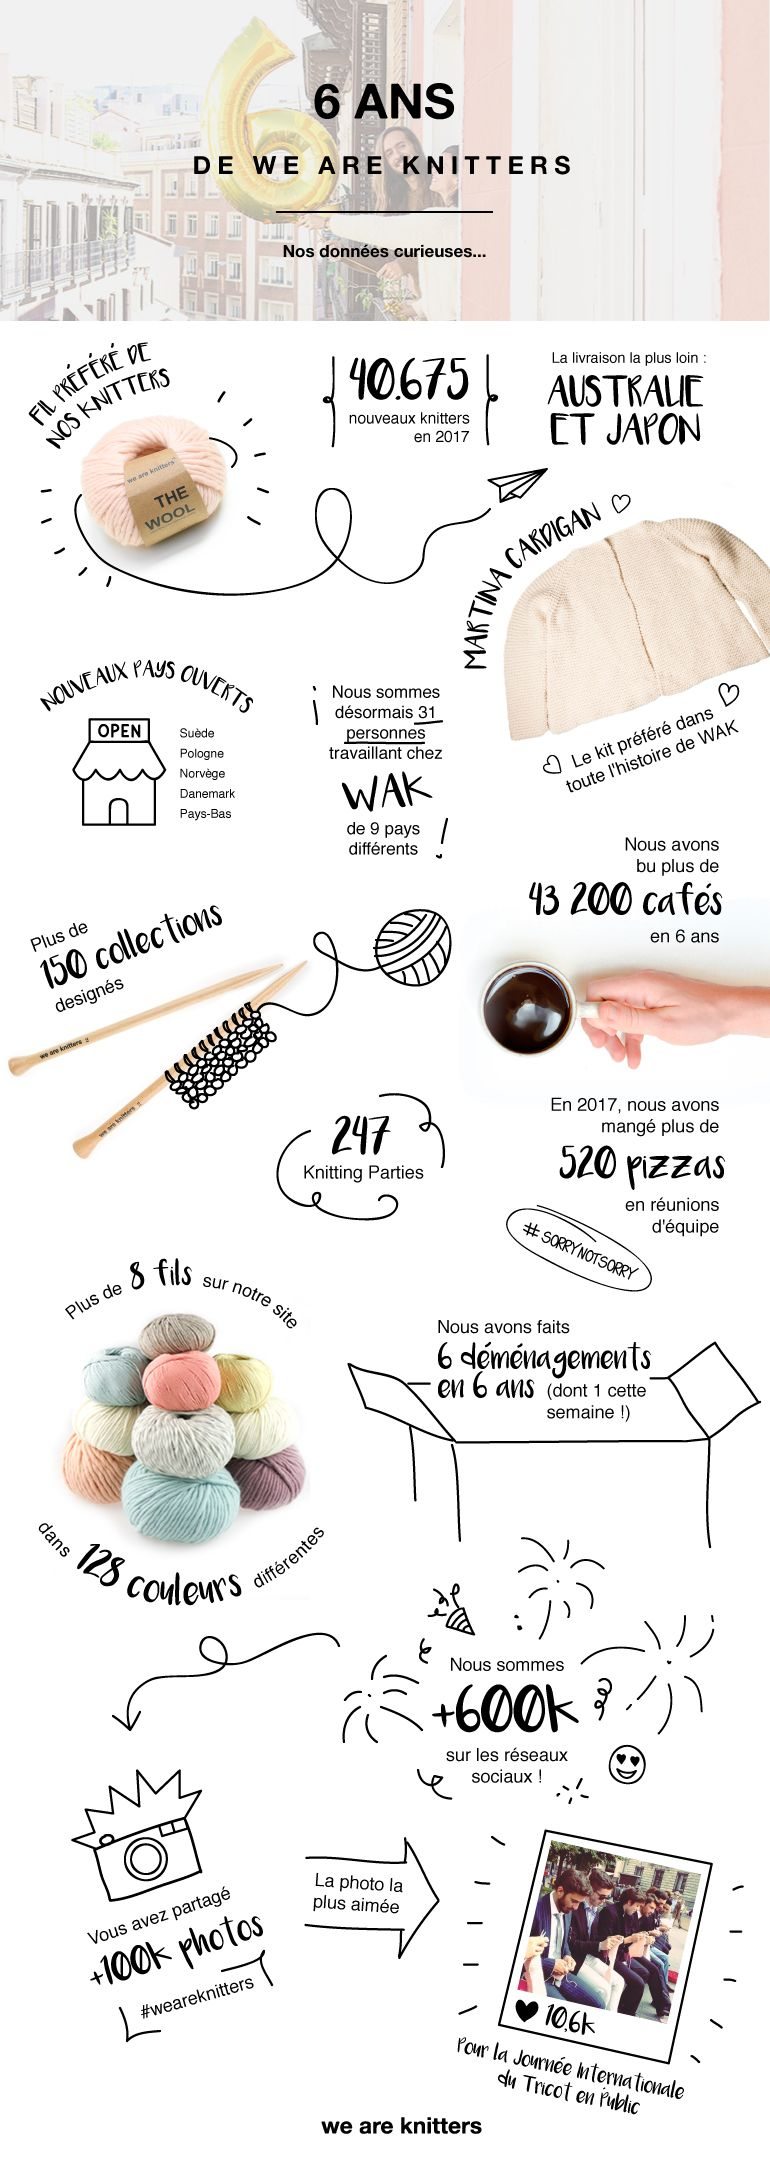 Advertising-Infographics-We-Are-Knitters-6eme-anniversaire-The Advertising Infographics : We Are Knitters 6ème anniversaire   The Blog - FR